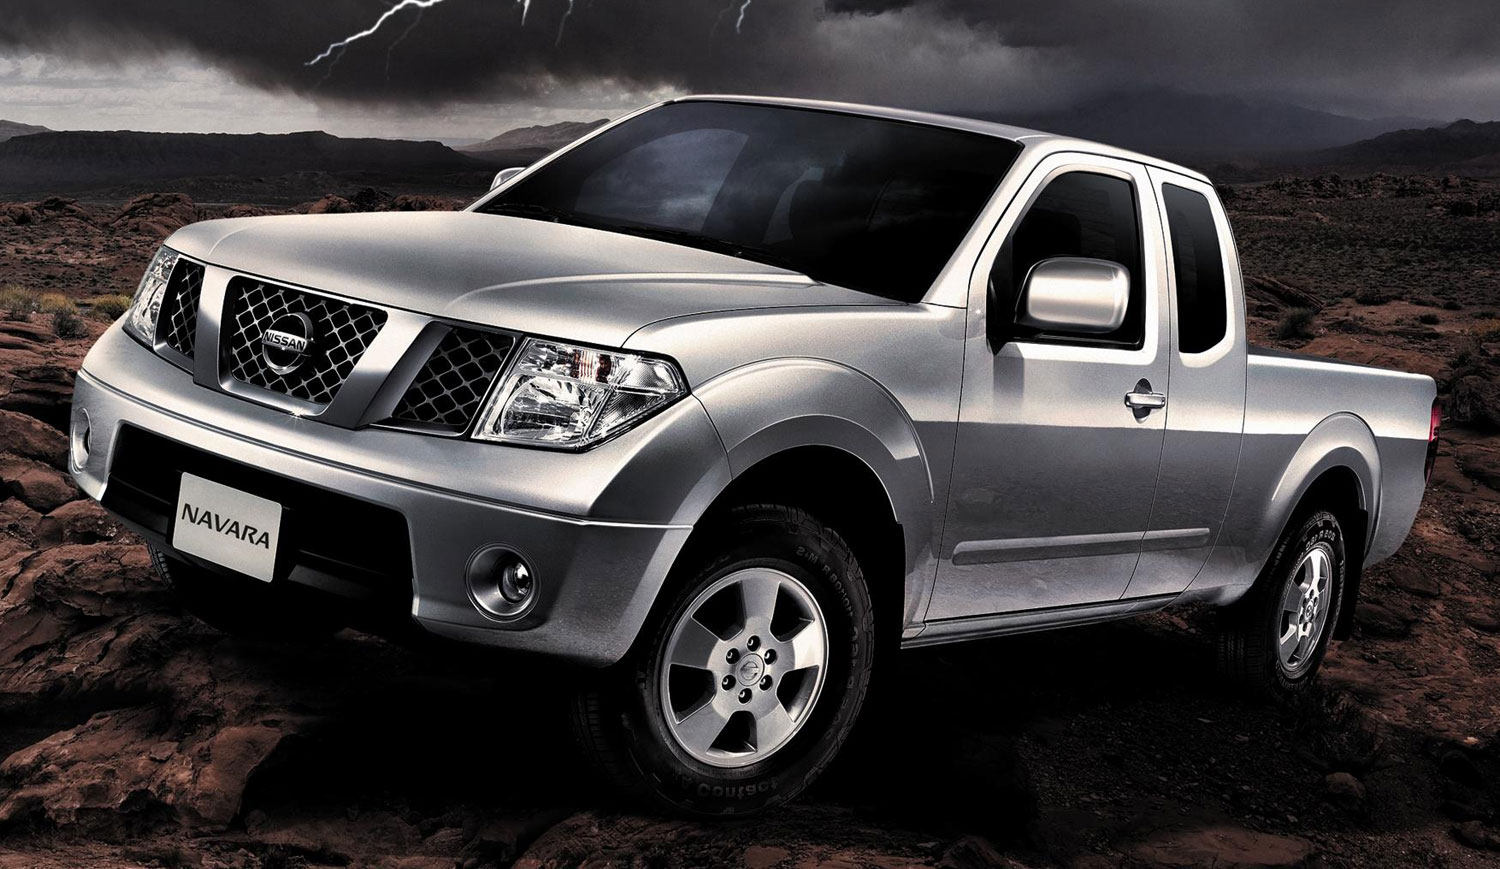 Nissan Frontier 4x4 New Car Update 2020 Polaris Sportsman 335 Fuel Filter Tan Chong Introduces The Navara King Cab